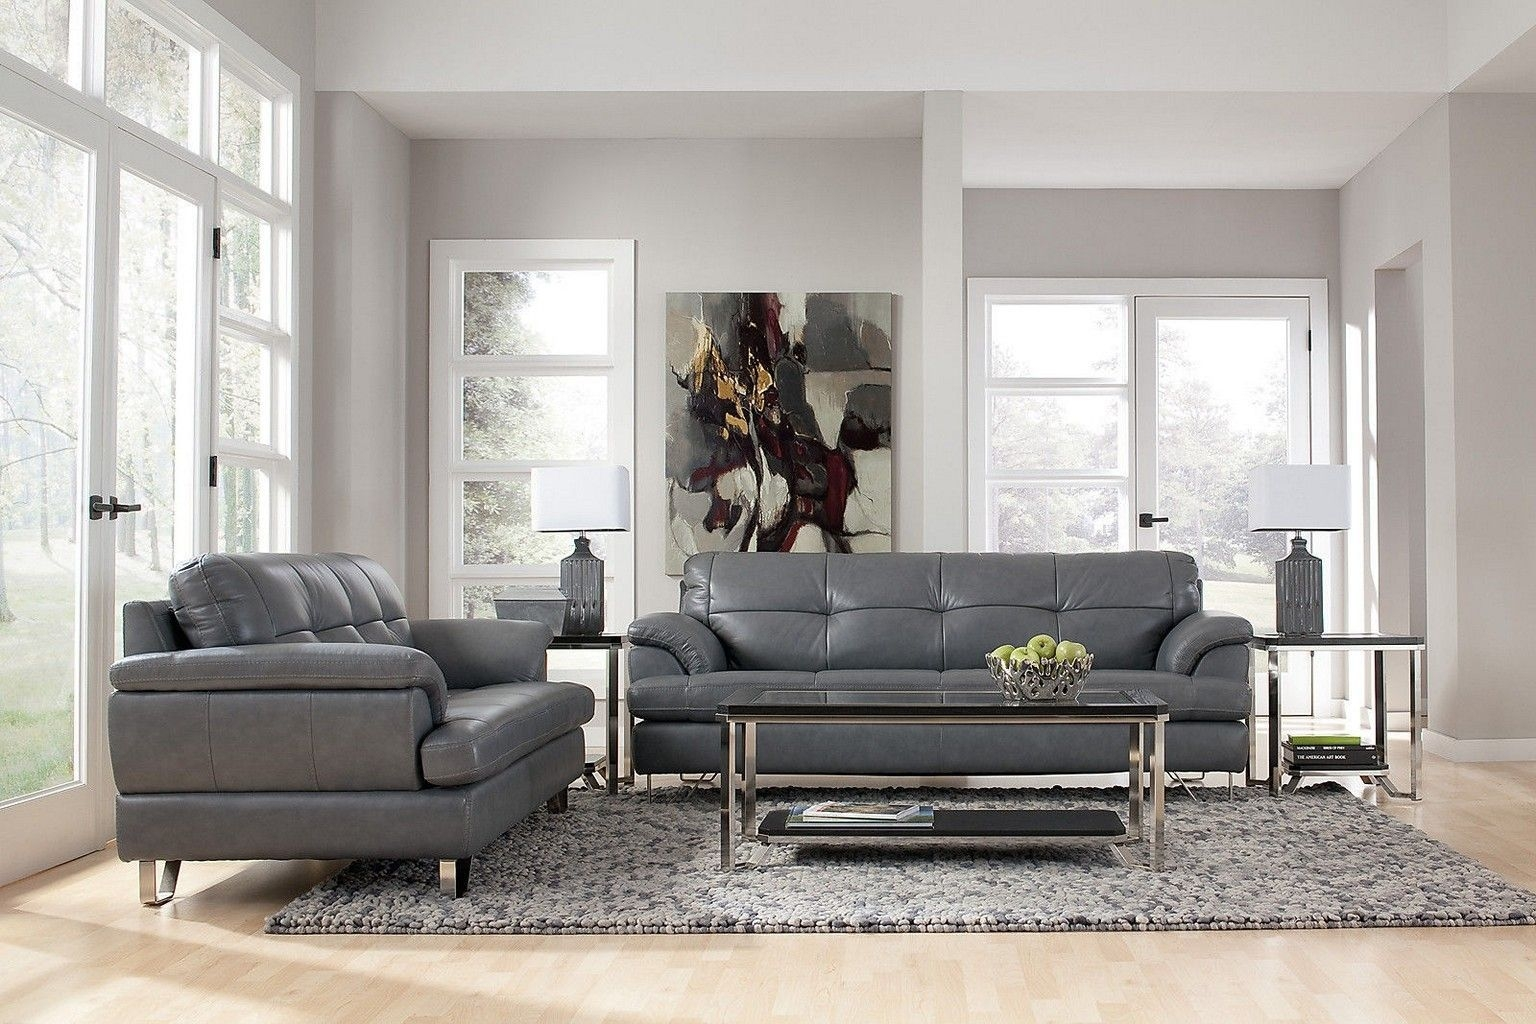 Ways To Decorate Grey Living Rooms  Living Room Grey Leather Sofa Decor Grey Couch Decor